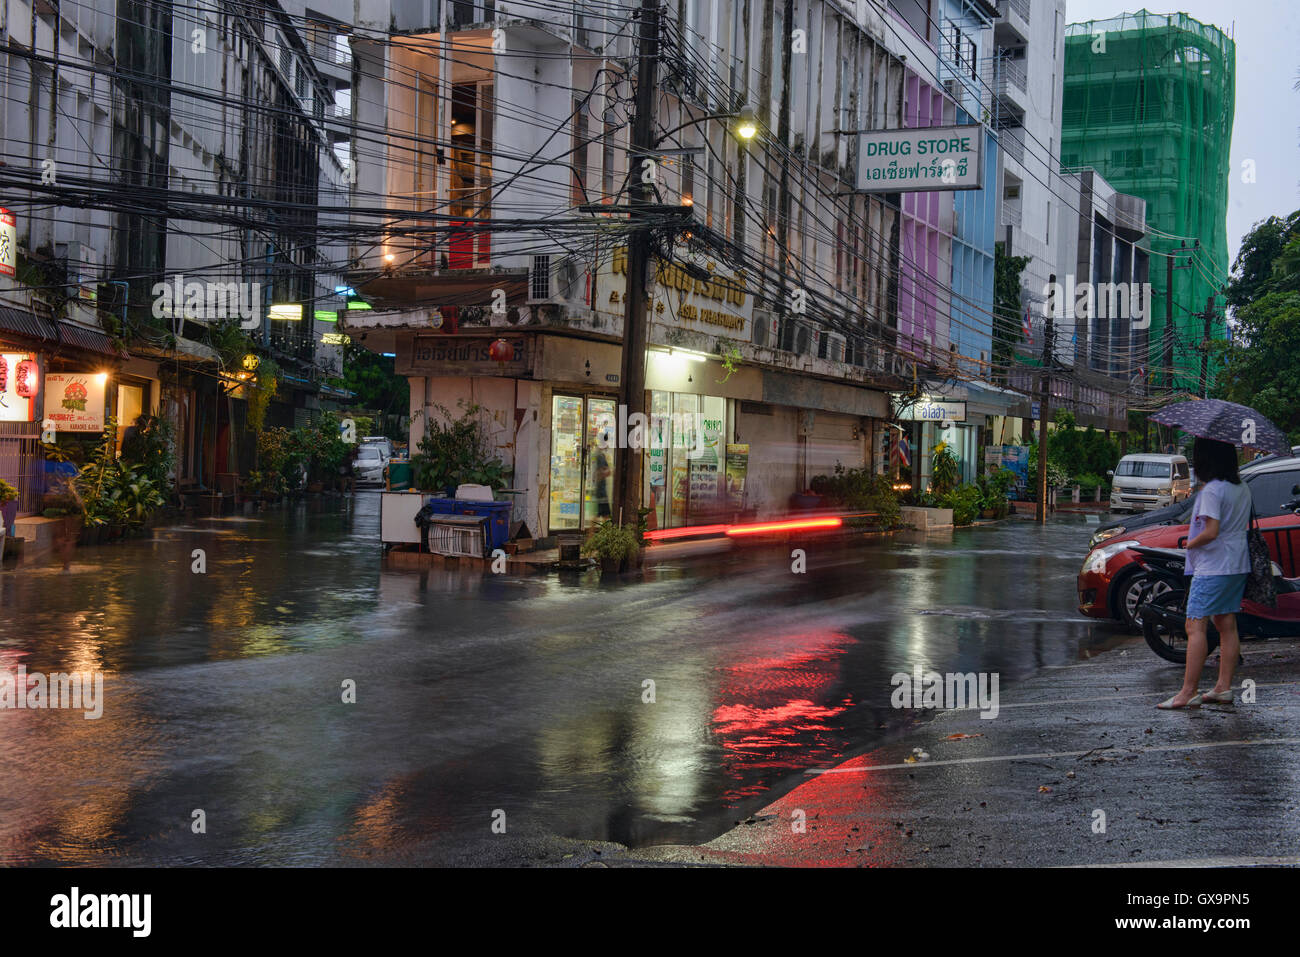 Riding through the flood, Bangkok, Thailand - Stock Image